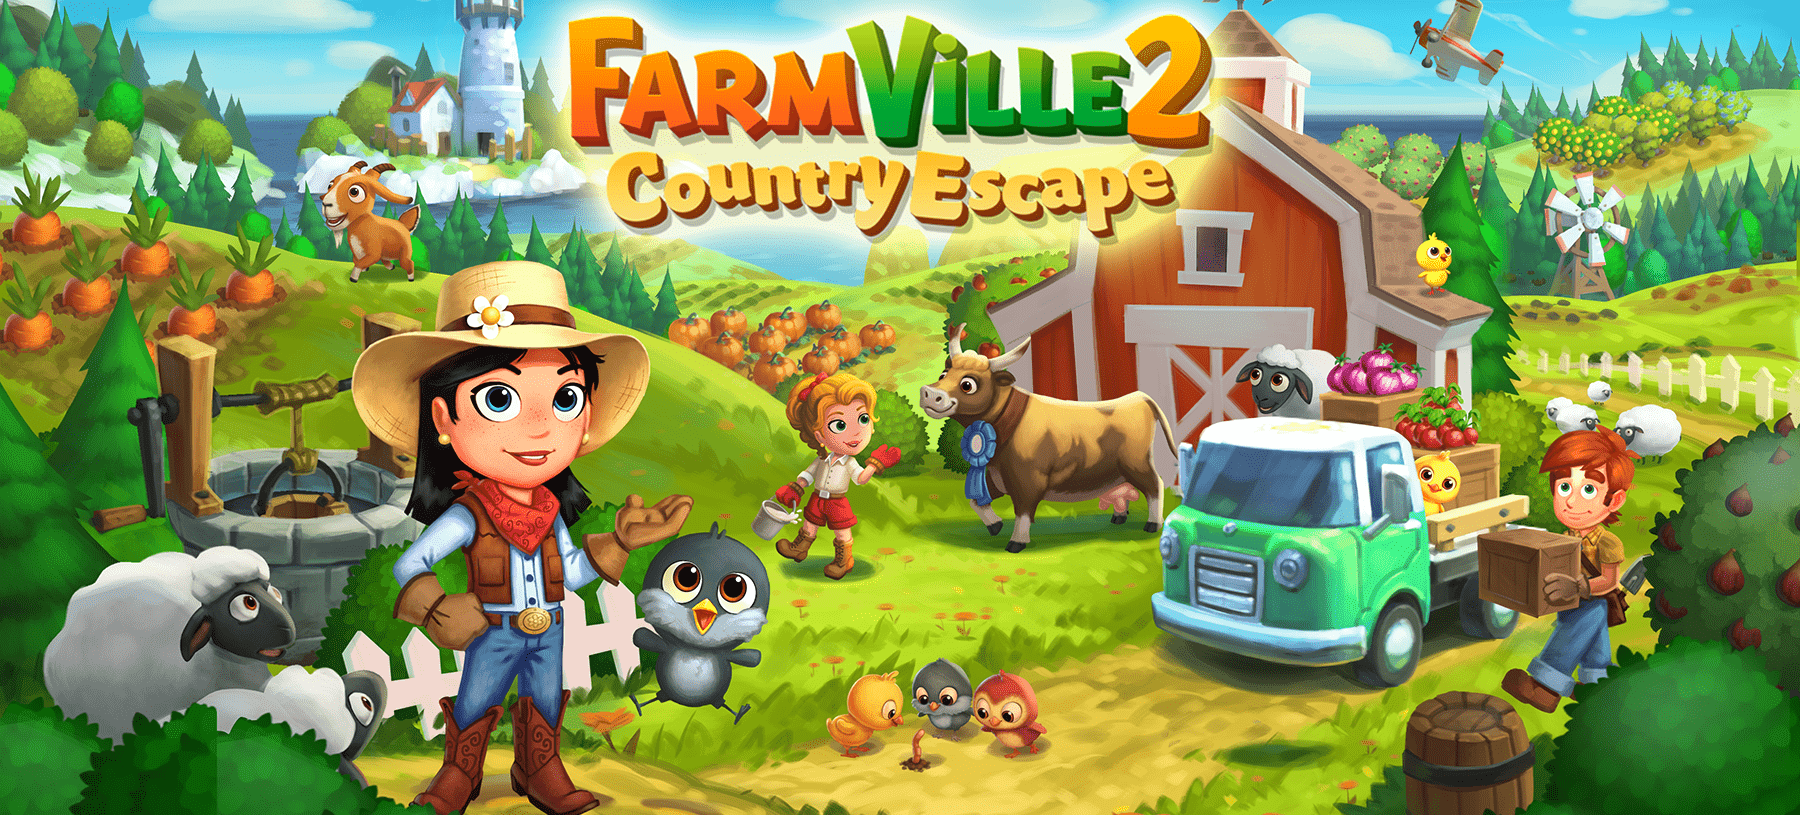 FarmVille 2: Country Escape Hero Image